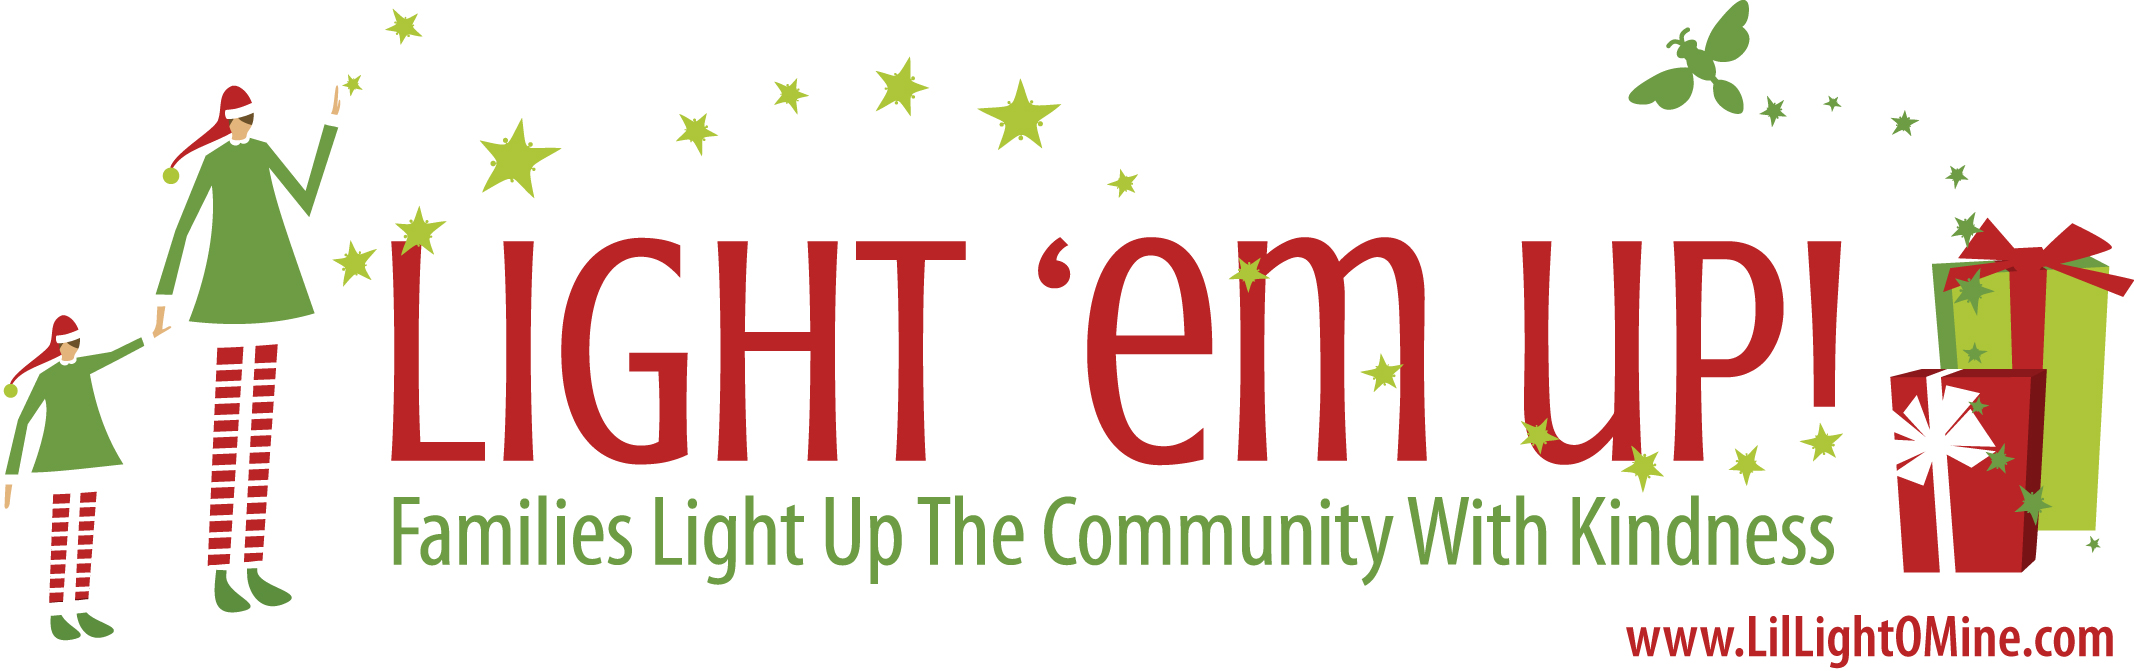 light em up_logo_fin_url